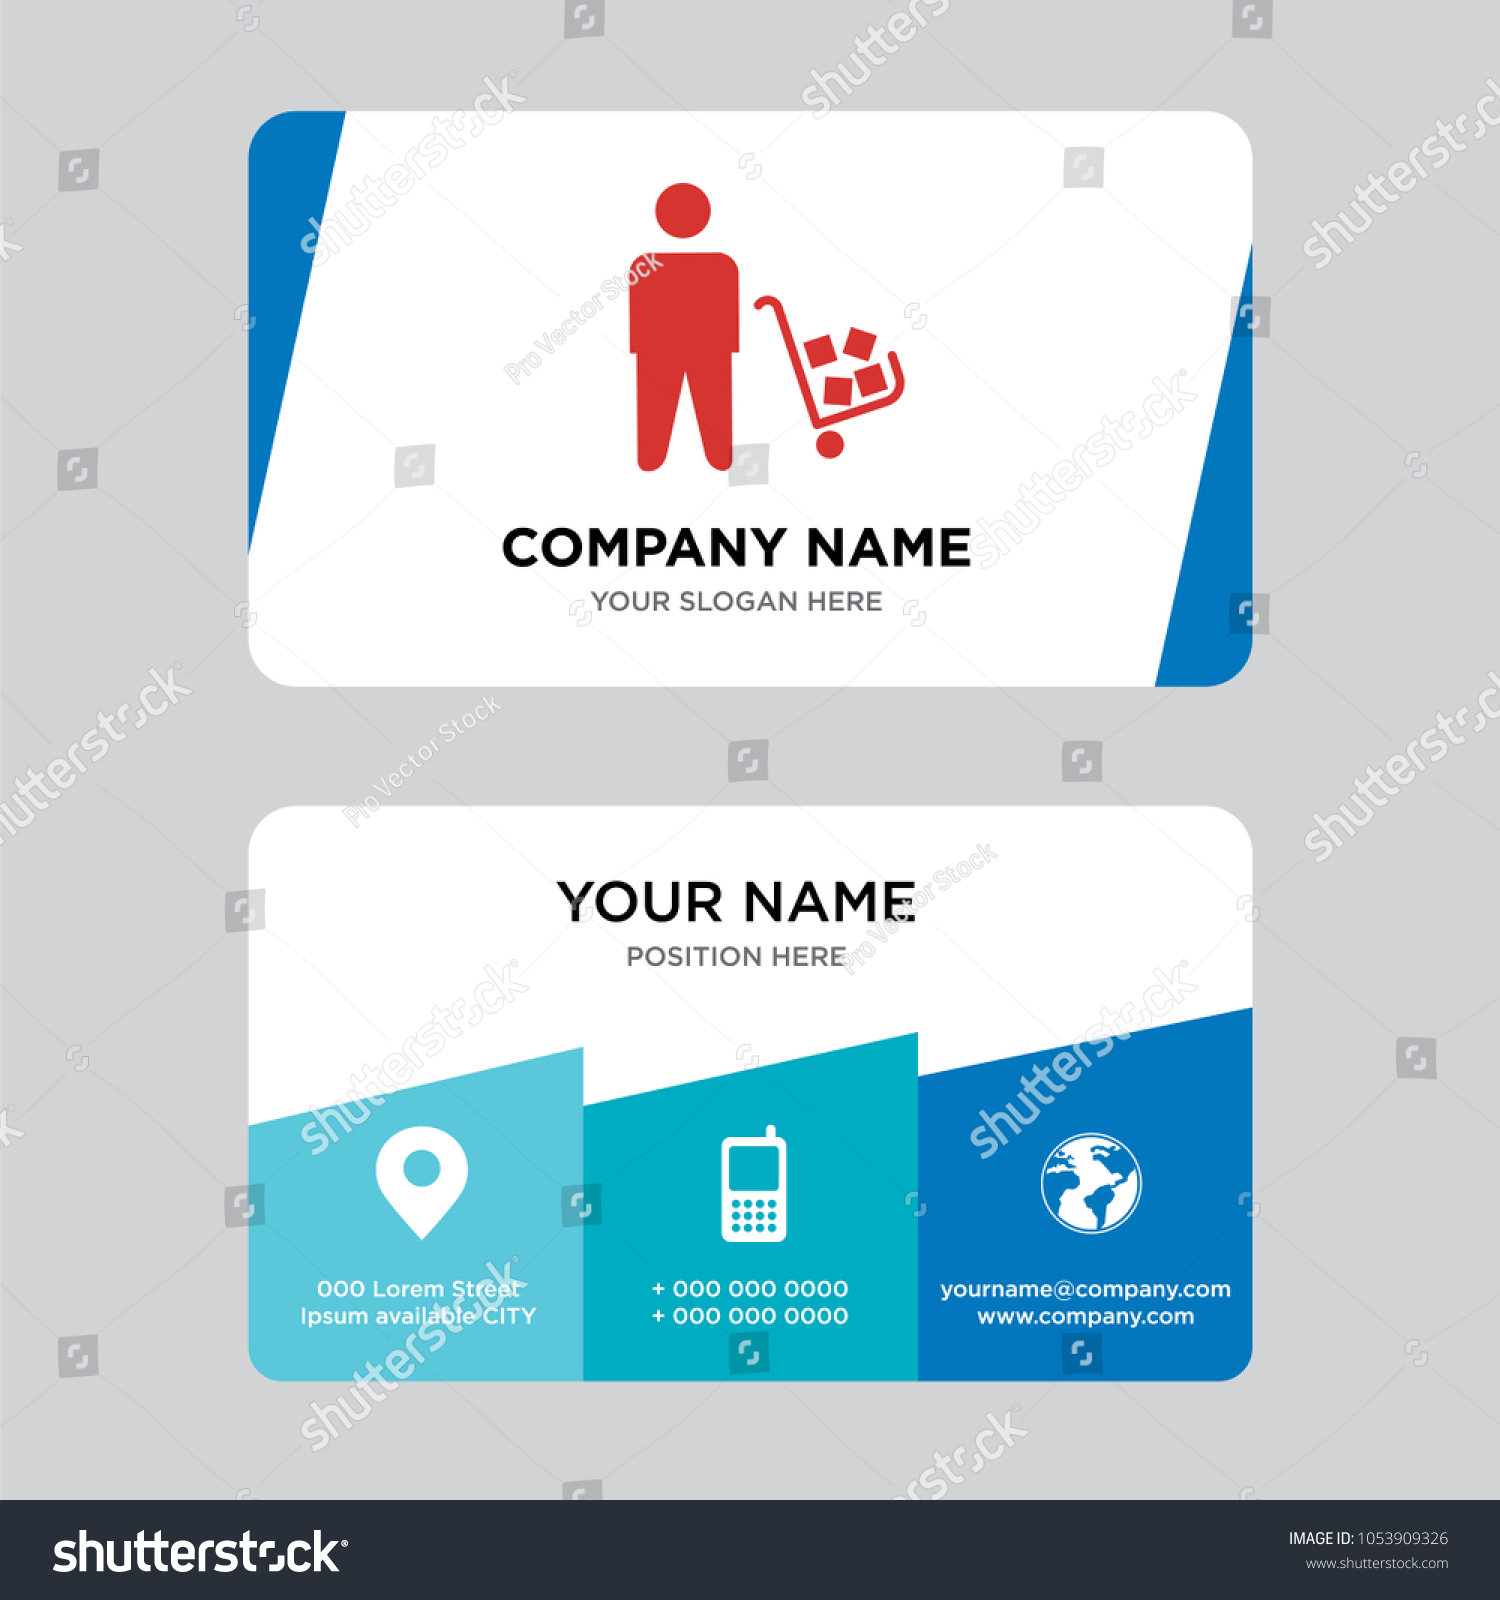 Supplier Business Card Design Template Visiting Stock Vector ...